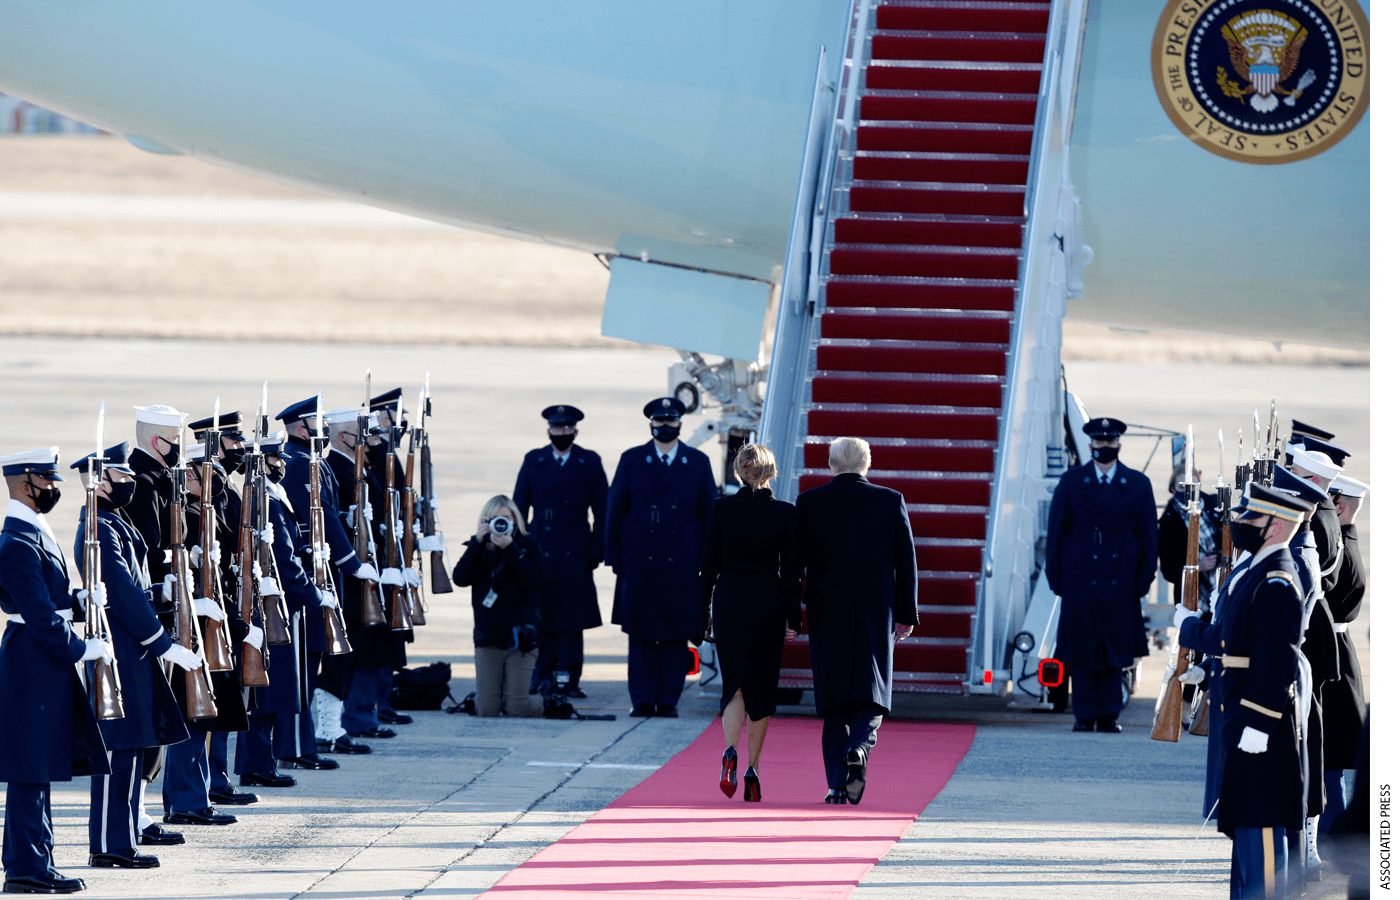 President Donald Trump and first lady Melania Trump are greeted by a military honor guard as they board Air Force One at Andrews Air Force Base, Wednesday, Jan. 20, 2021.